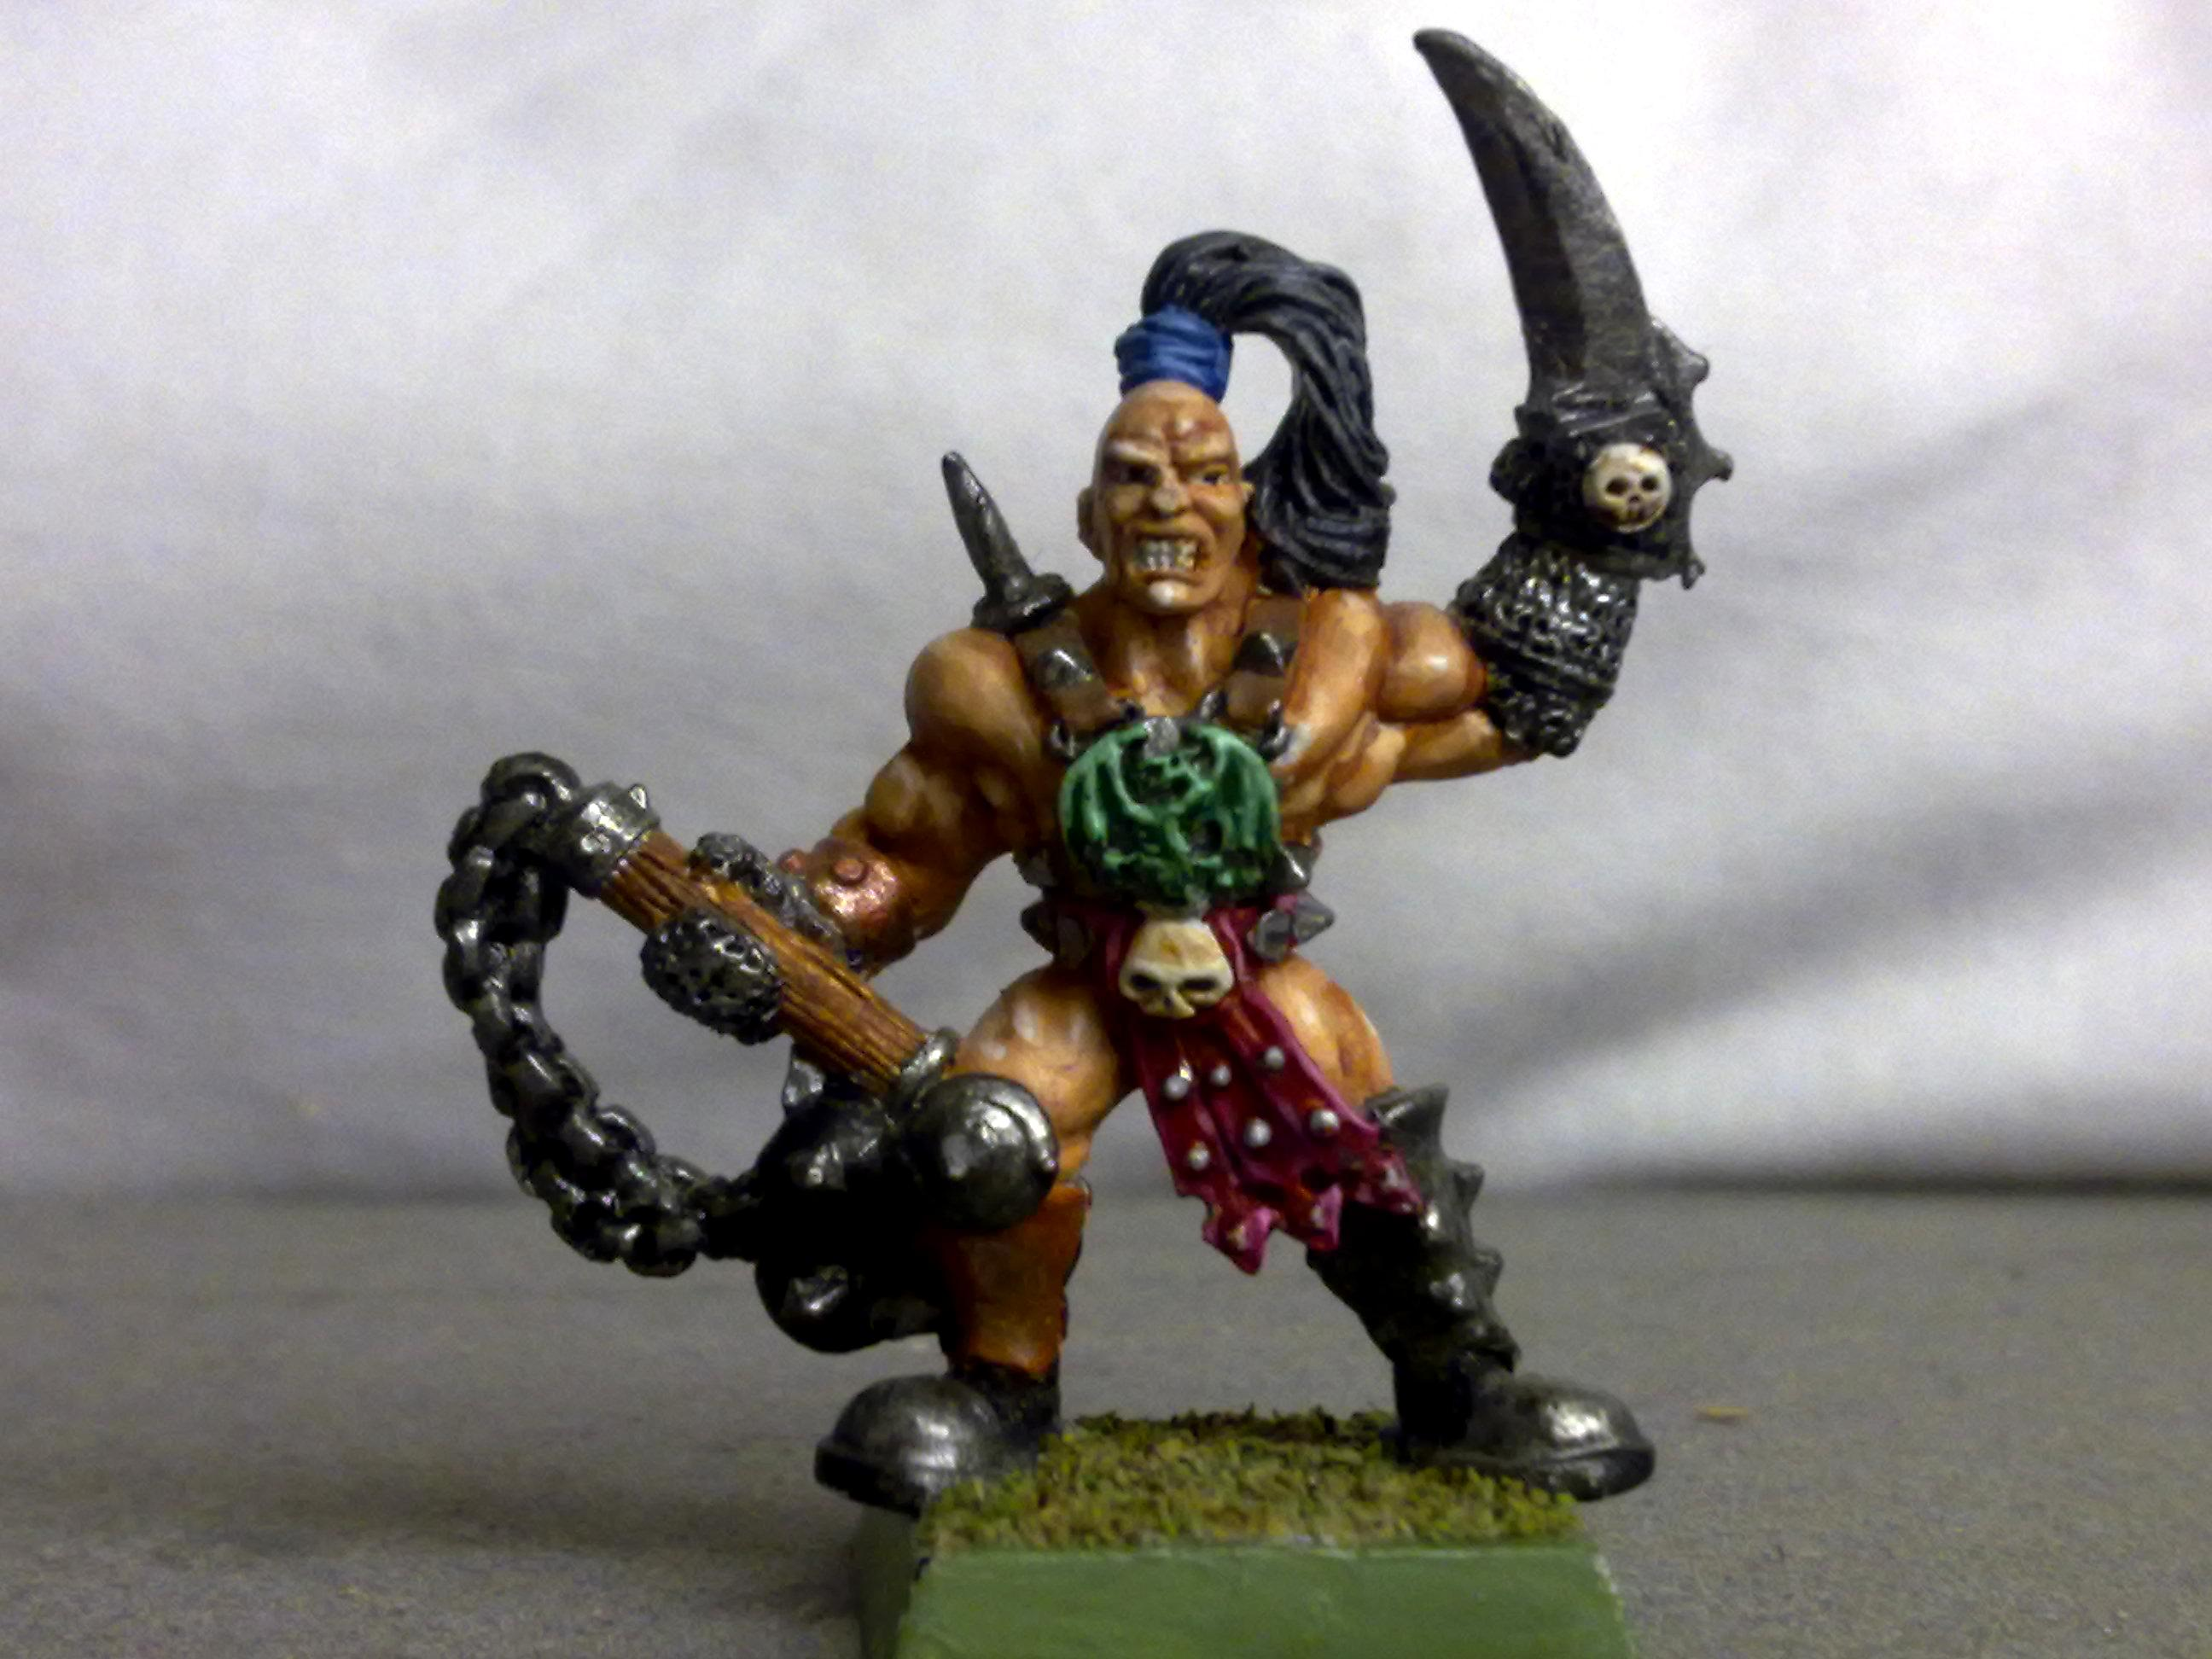 Fighter, Flail, Mean, Pit, Pitt, Quest, Spiked, Warhammer Fantasy